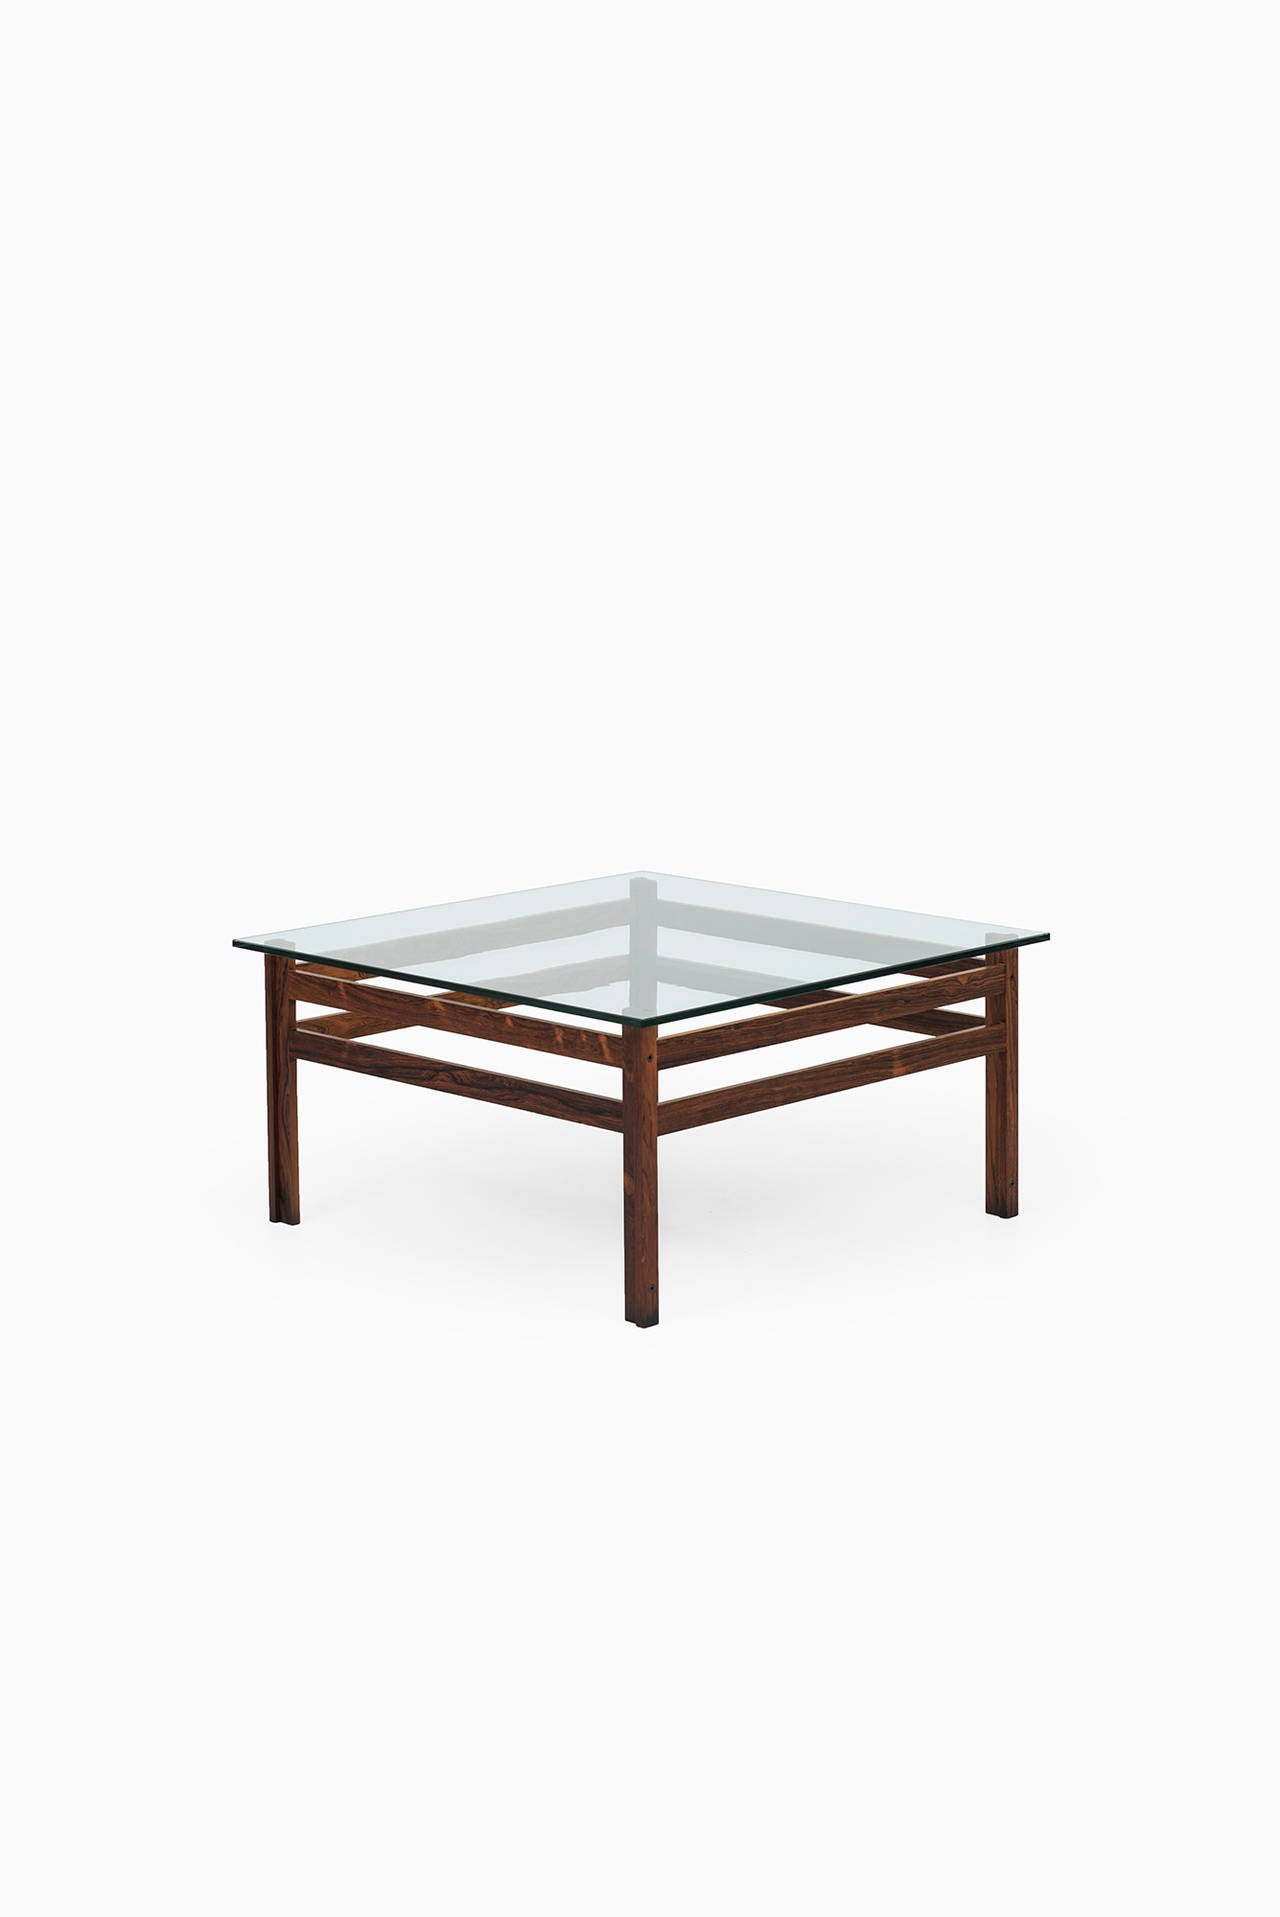 how to cut thick glass table